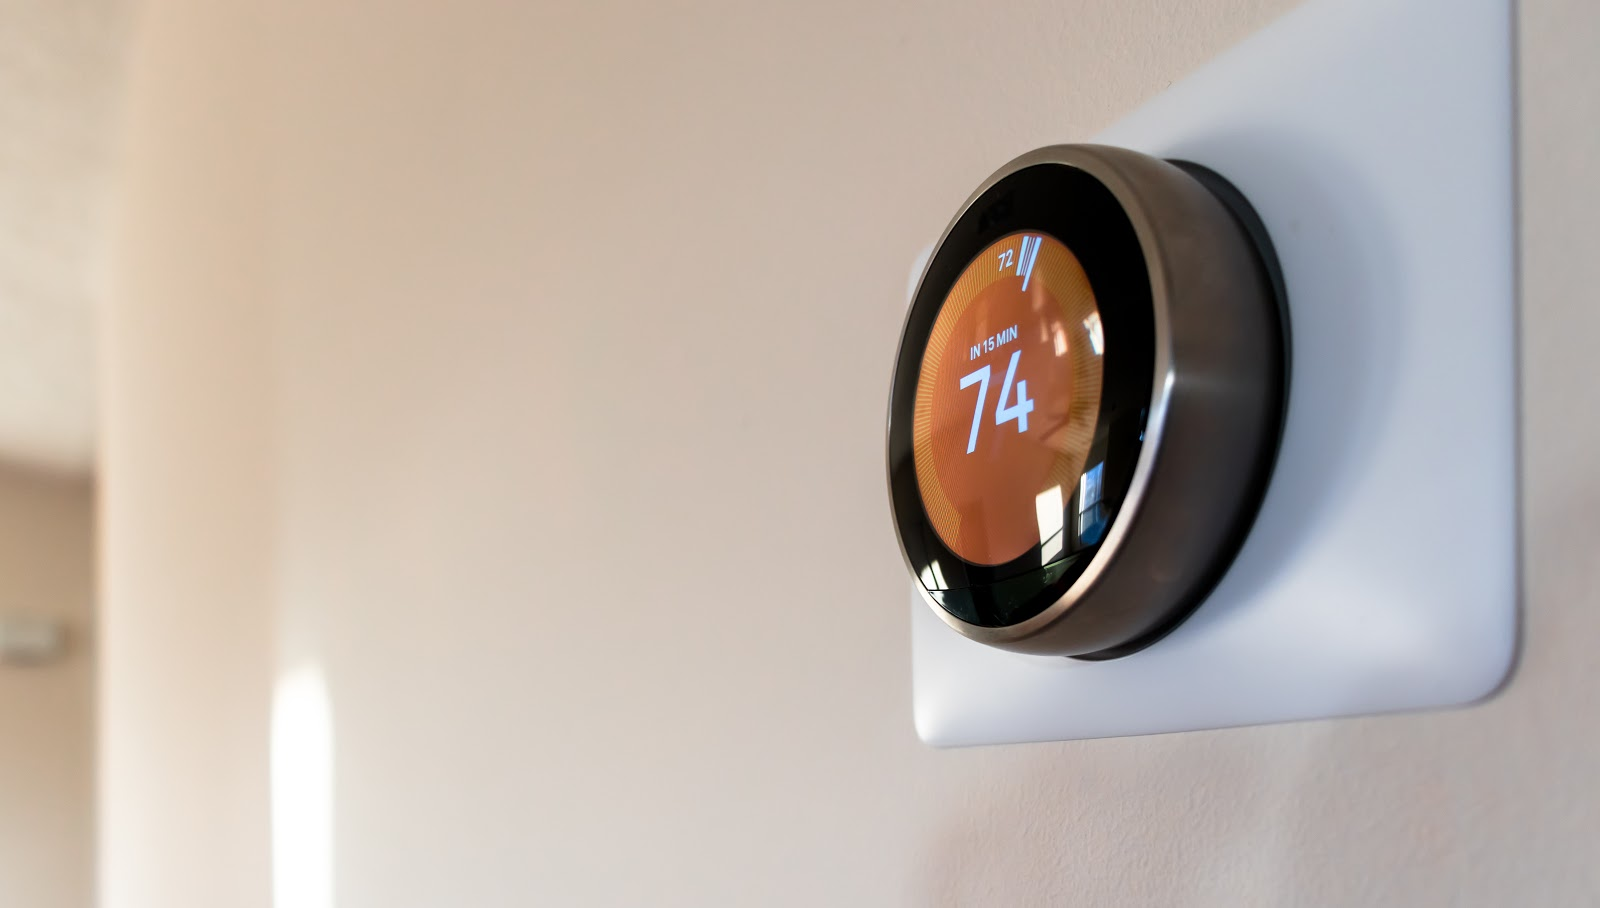 7 Ways a Smart Home Can Help You Go Green